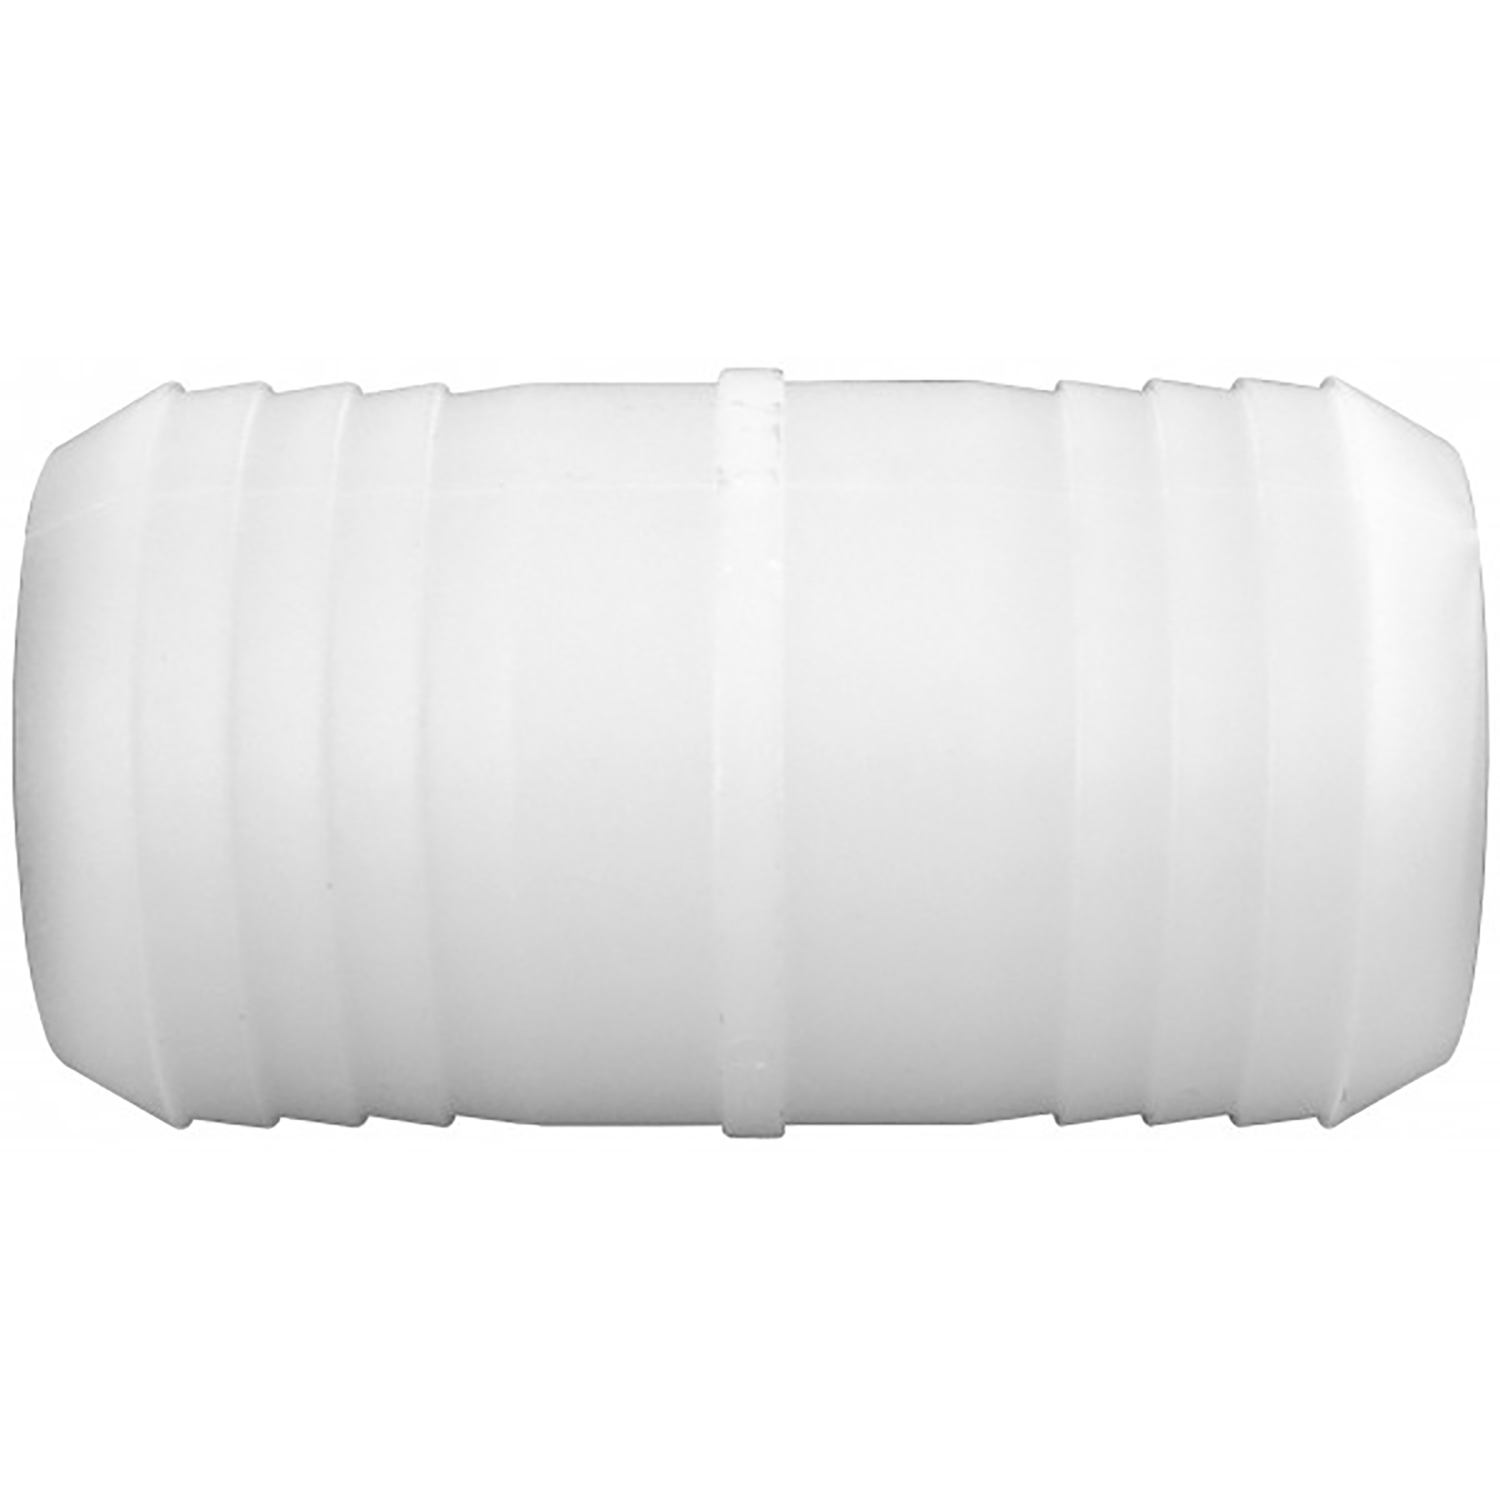 Green Leaf  Nylon  Hose Mender  5/8 in. Dia. x 5/8 in. Dia. White  1 pk